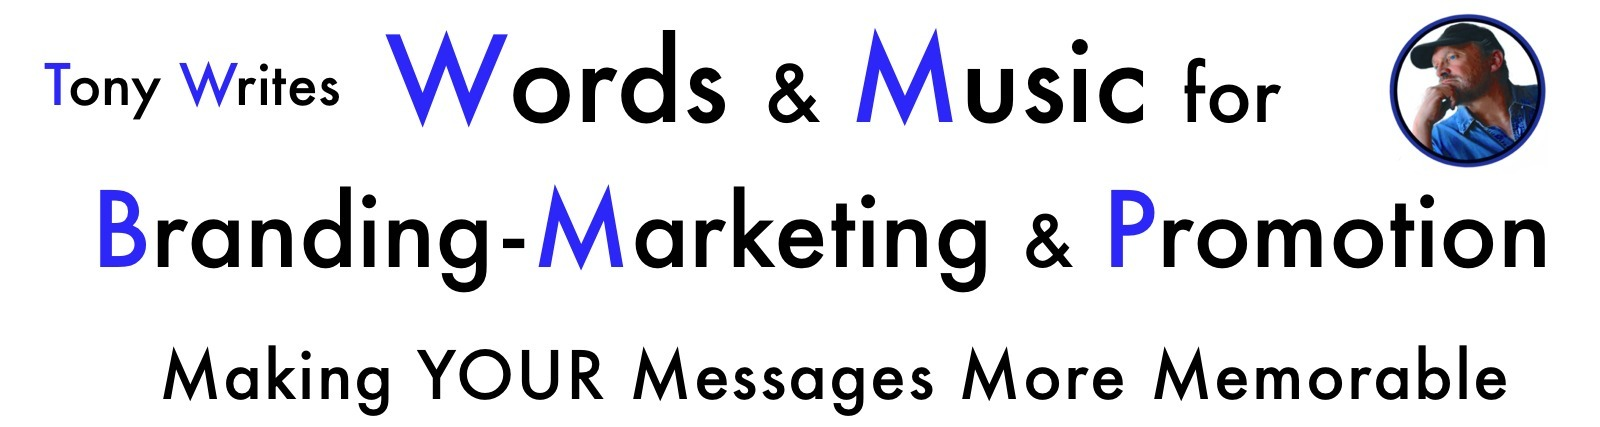 Tony Writes - Words and Music for Business Branding Marketing Promotion